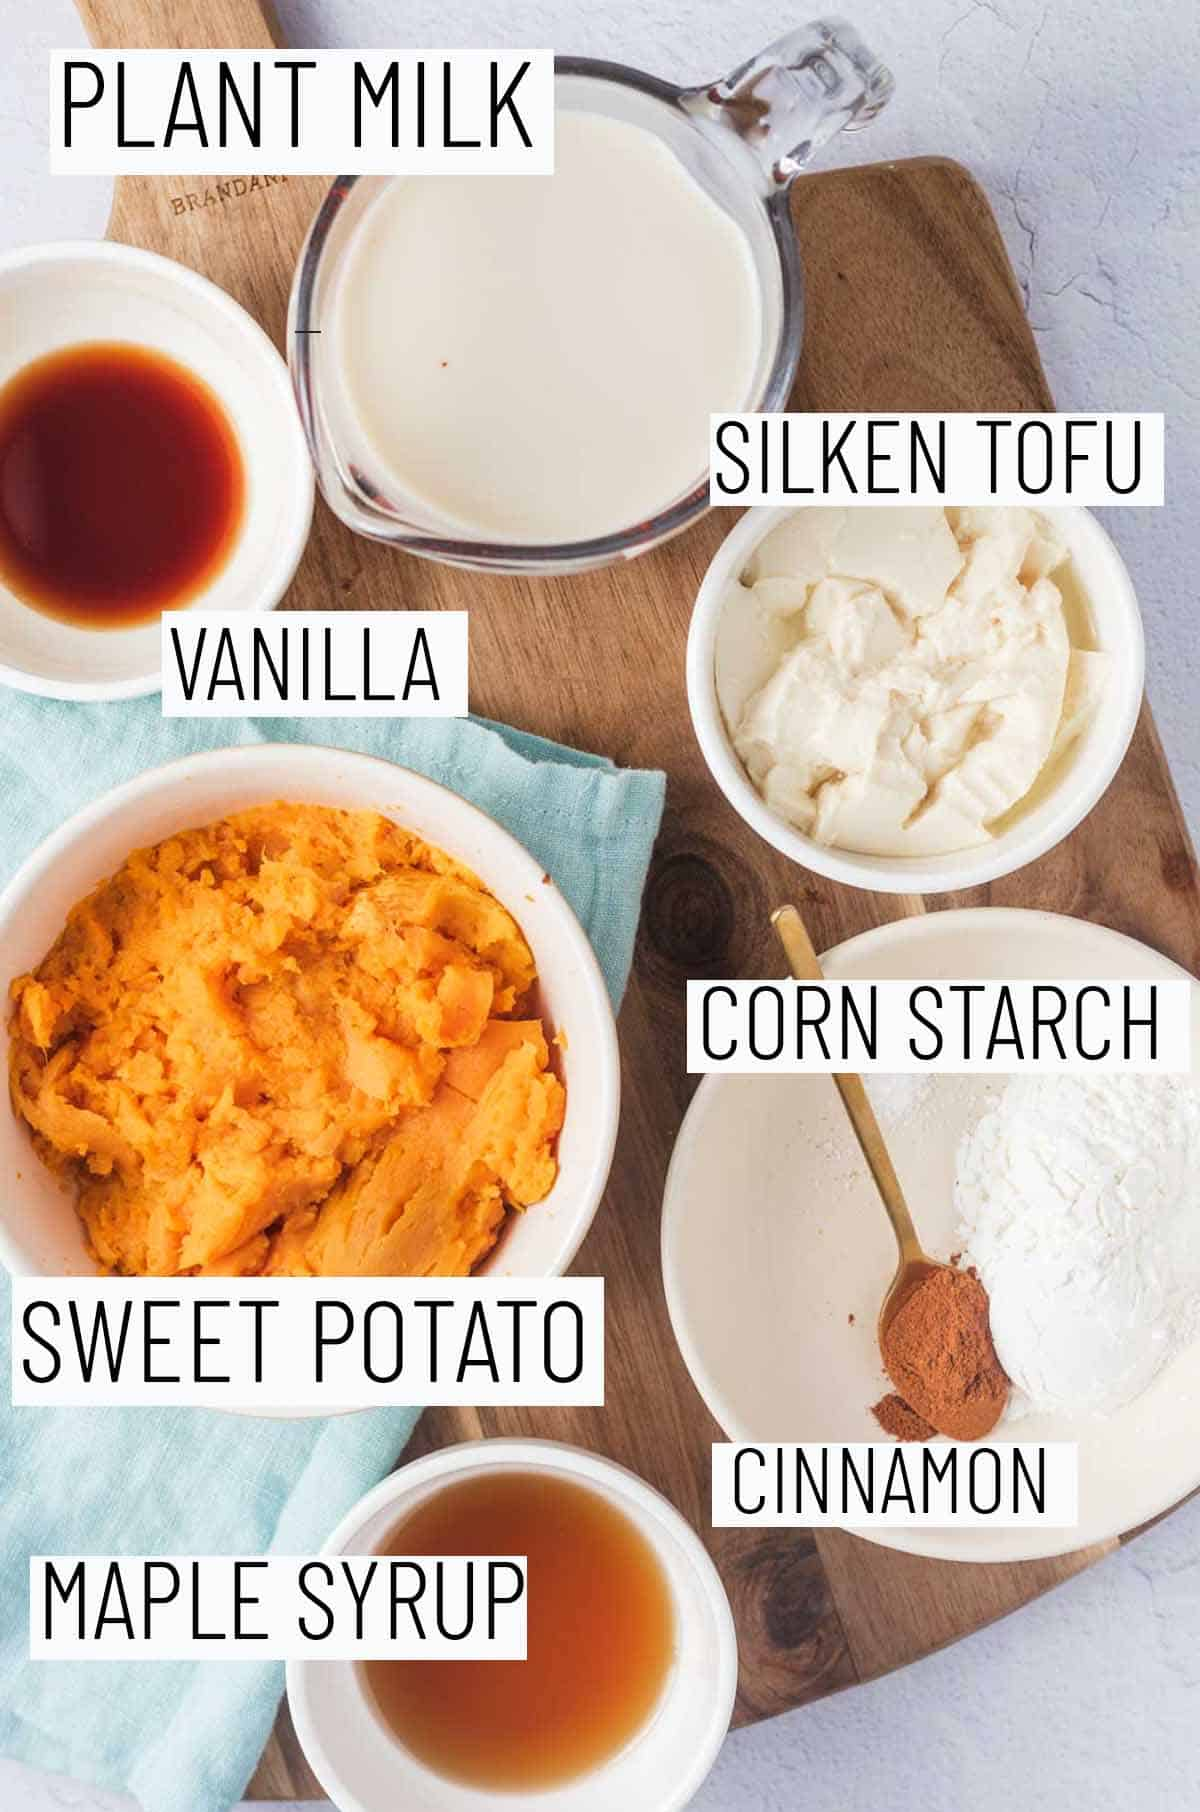 Flat lay image of portioned recipe ingredients including maple syrup, cinnamon, cornstarch, sweet potato, tofu, milk, and vanilla.